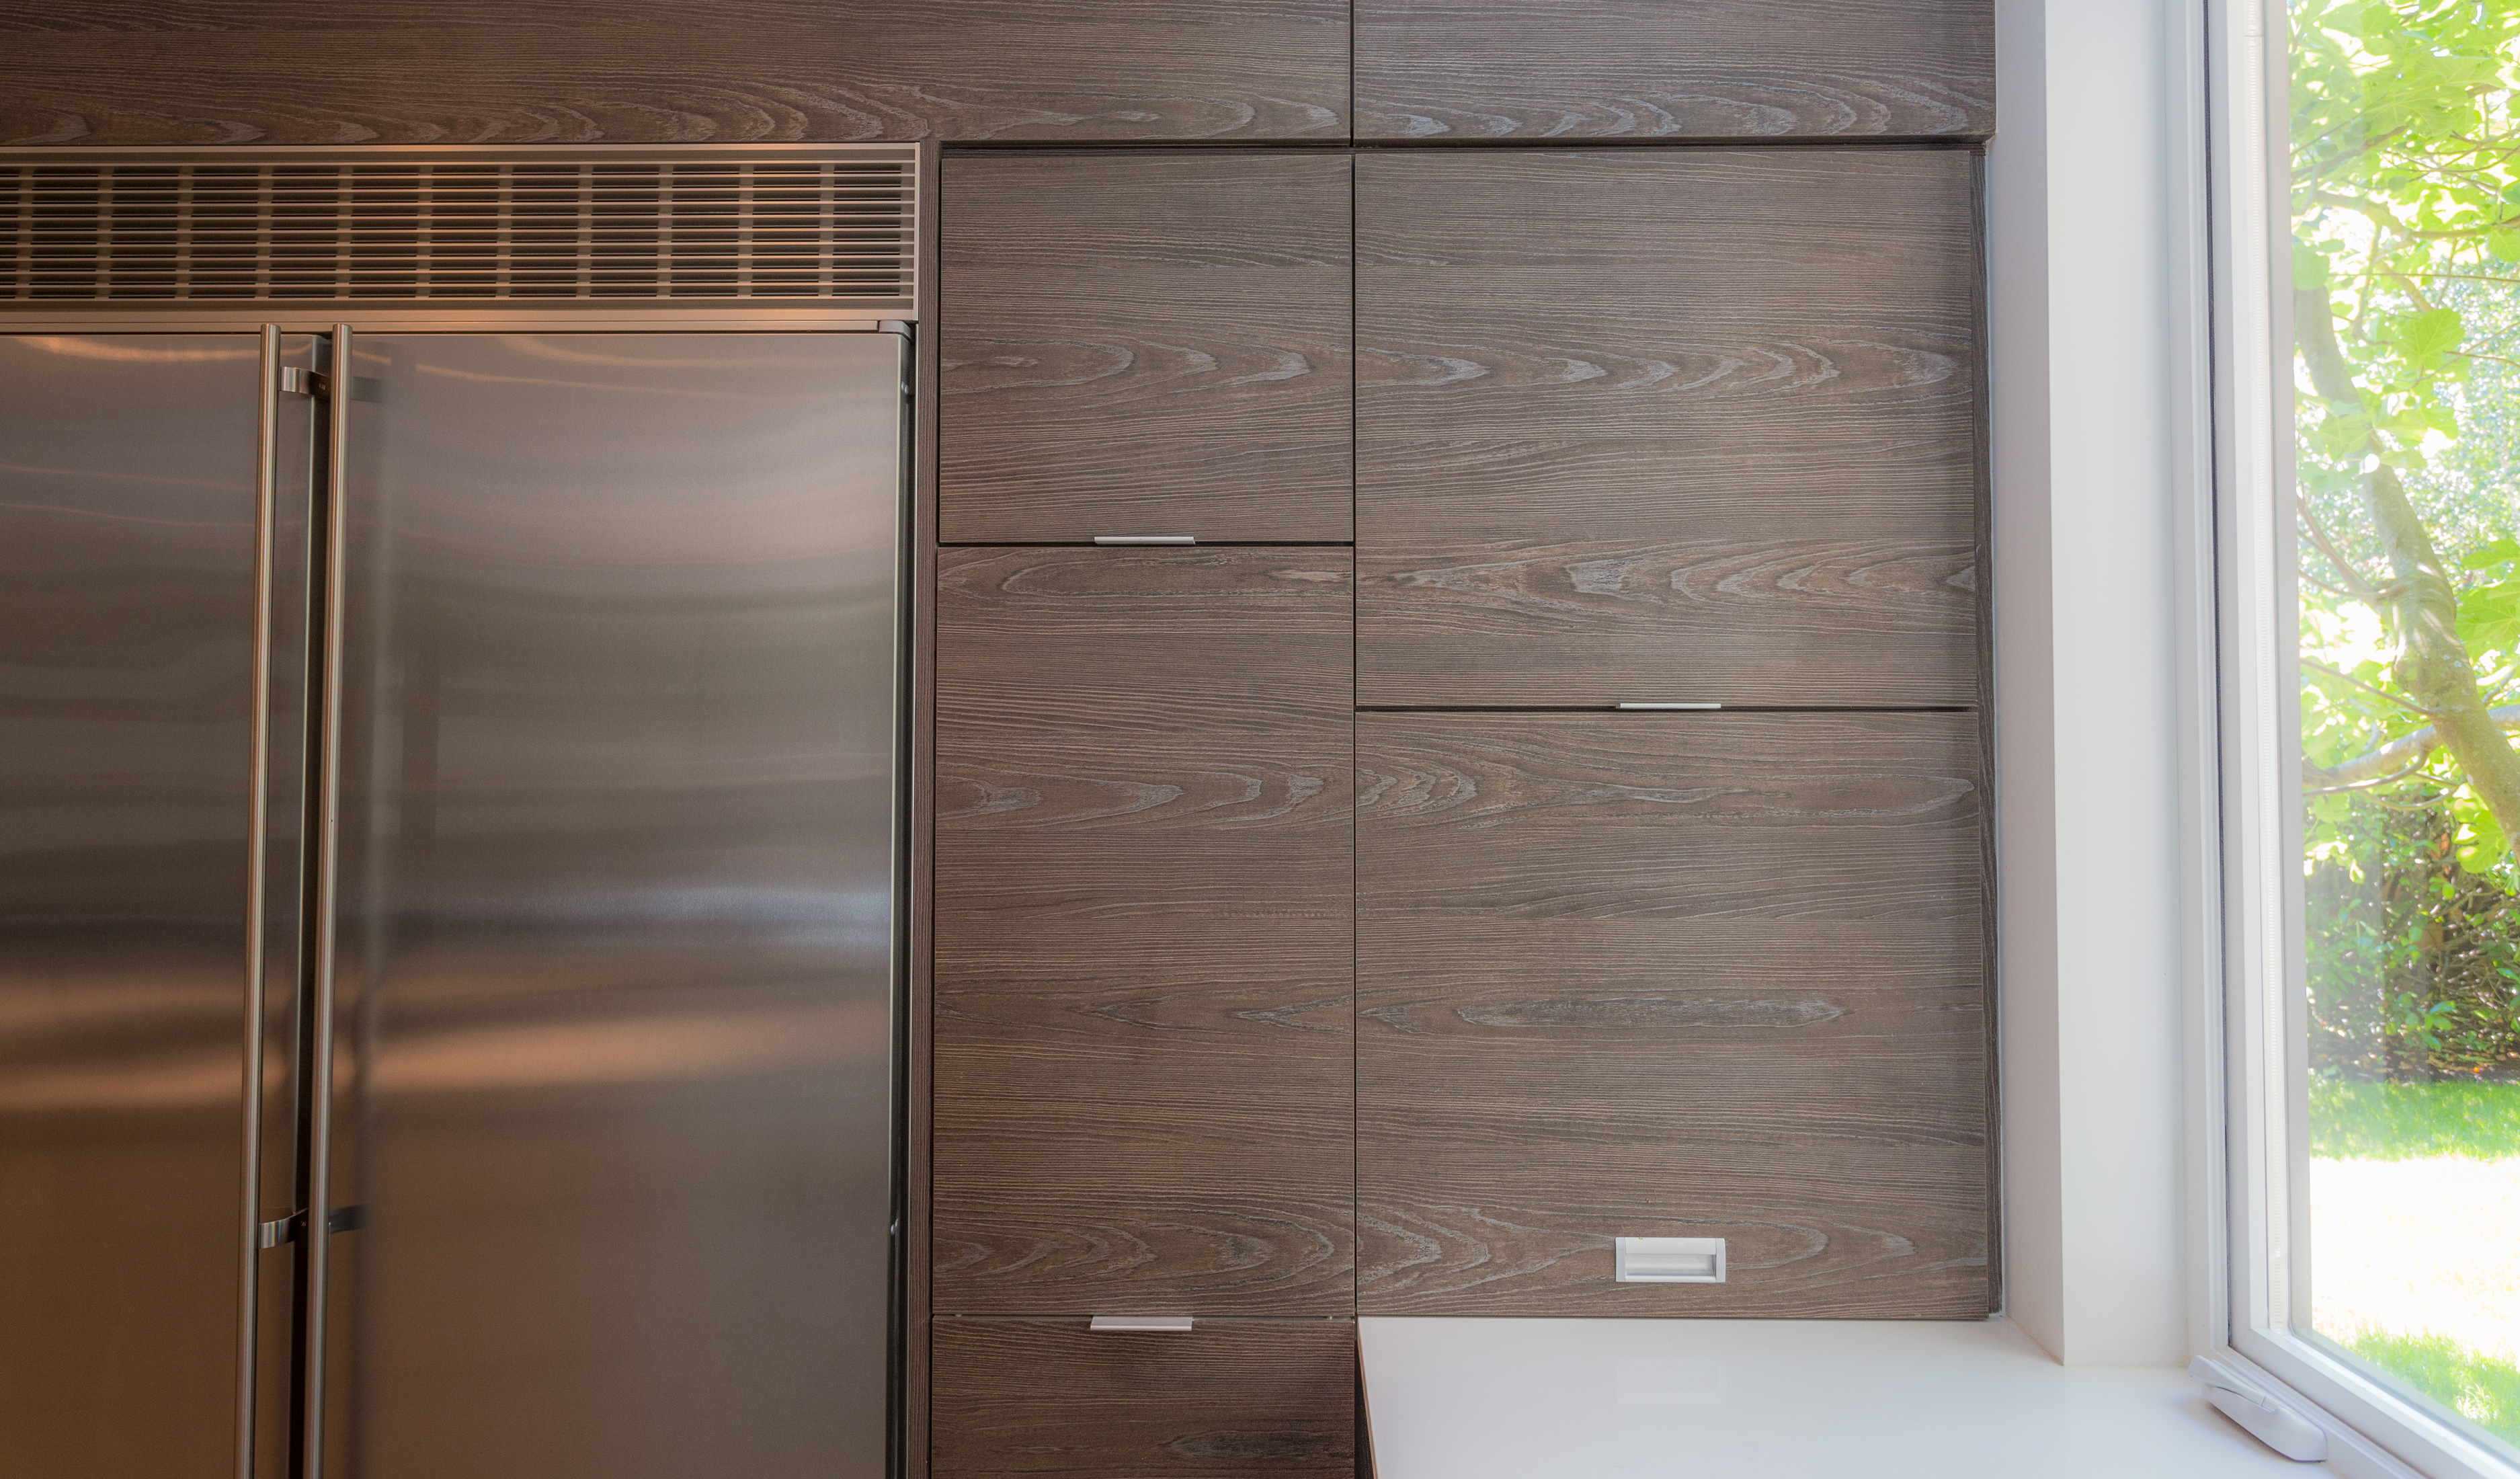 Imported Italian Laminate Kitchen